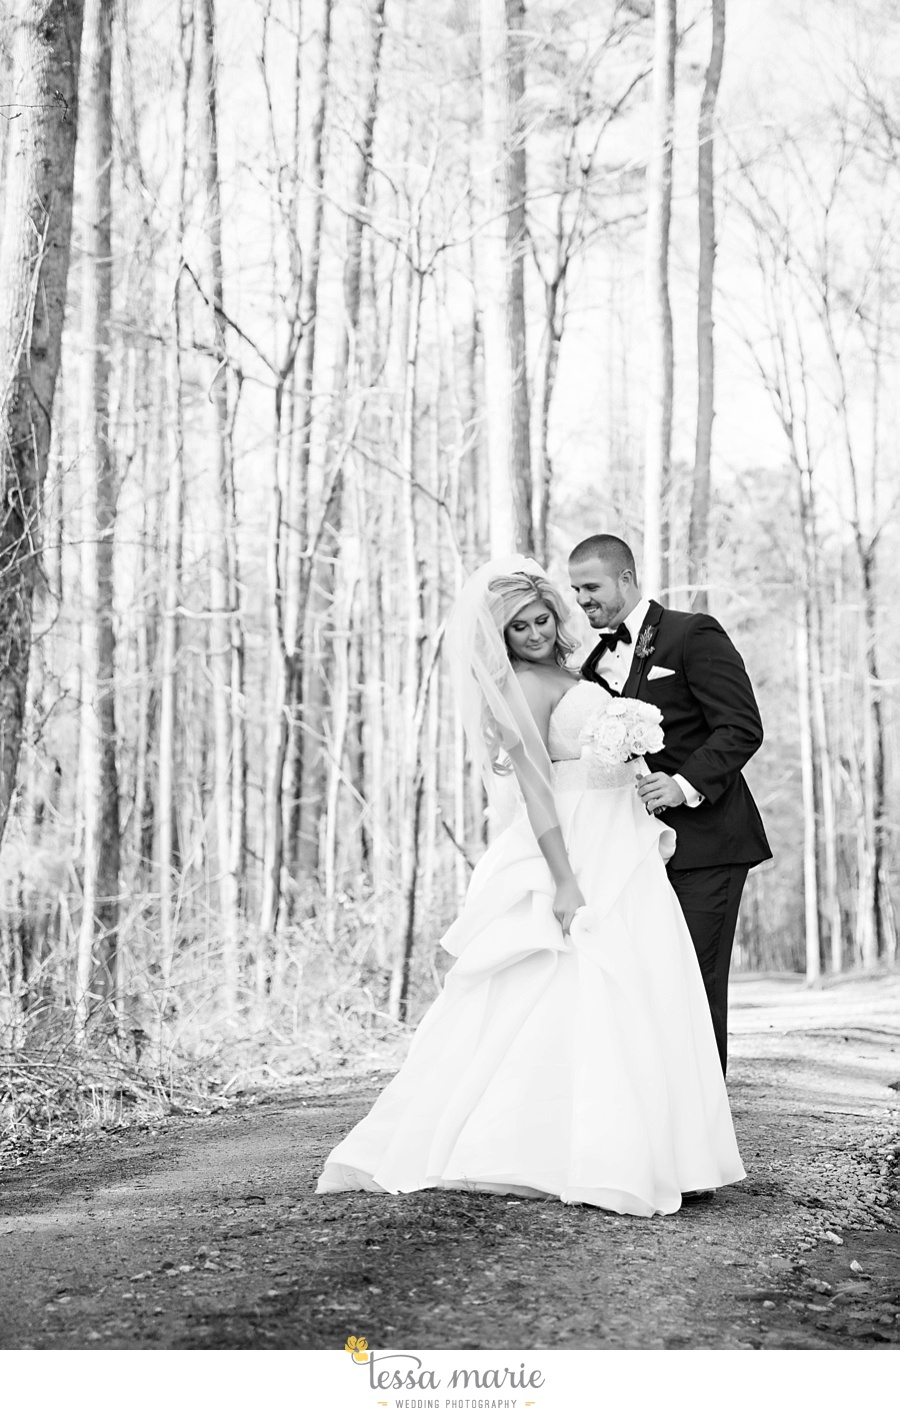 foxhall_outdoor_wedding_stables_pictures_tessa_marie_weddings_kayla_buck_bloomin_bouquets_joan_pillow_atlanta_wedding_pictures_0062